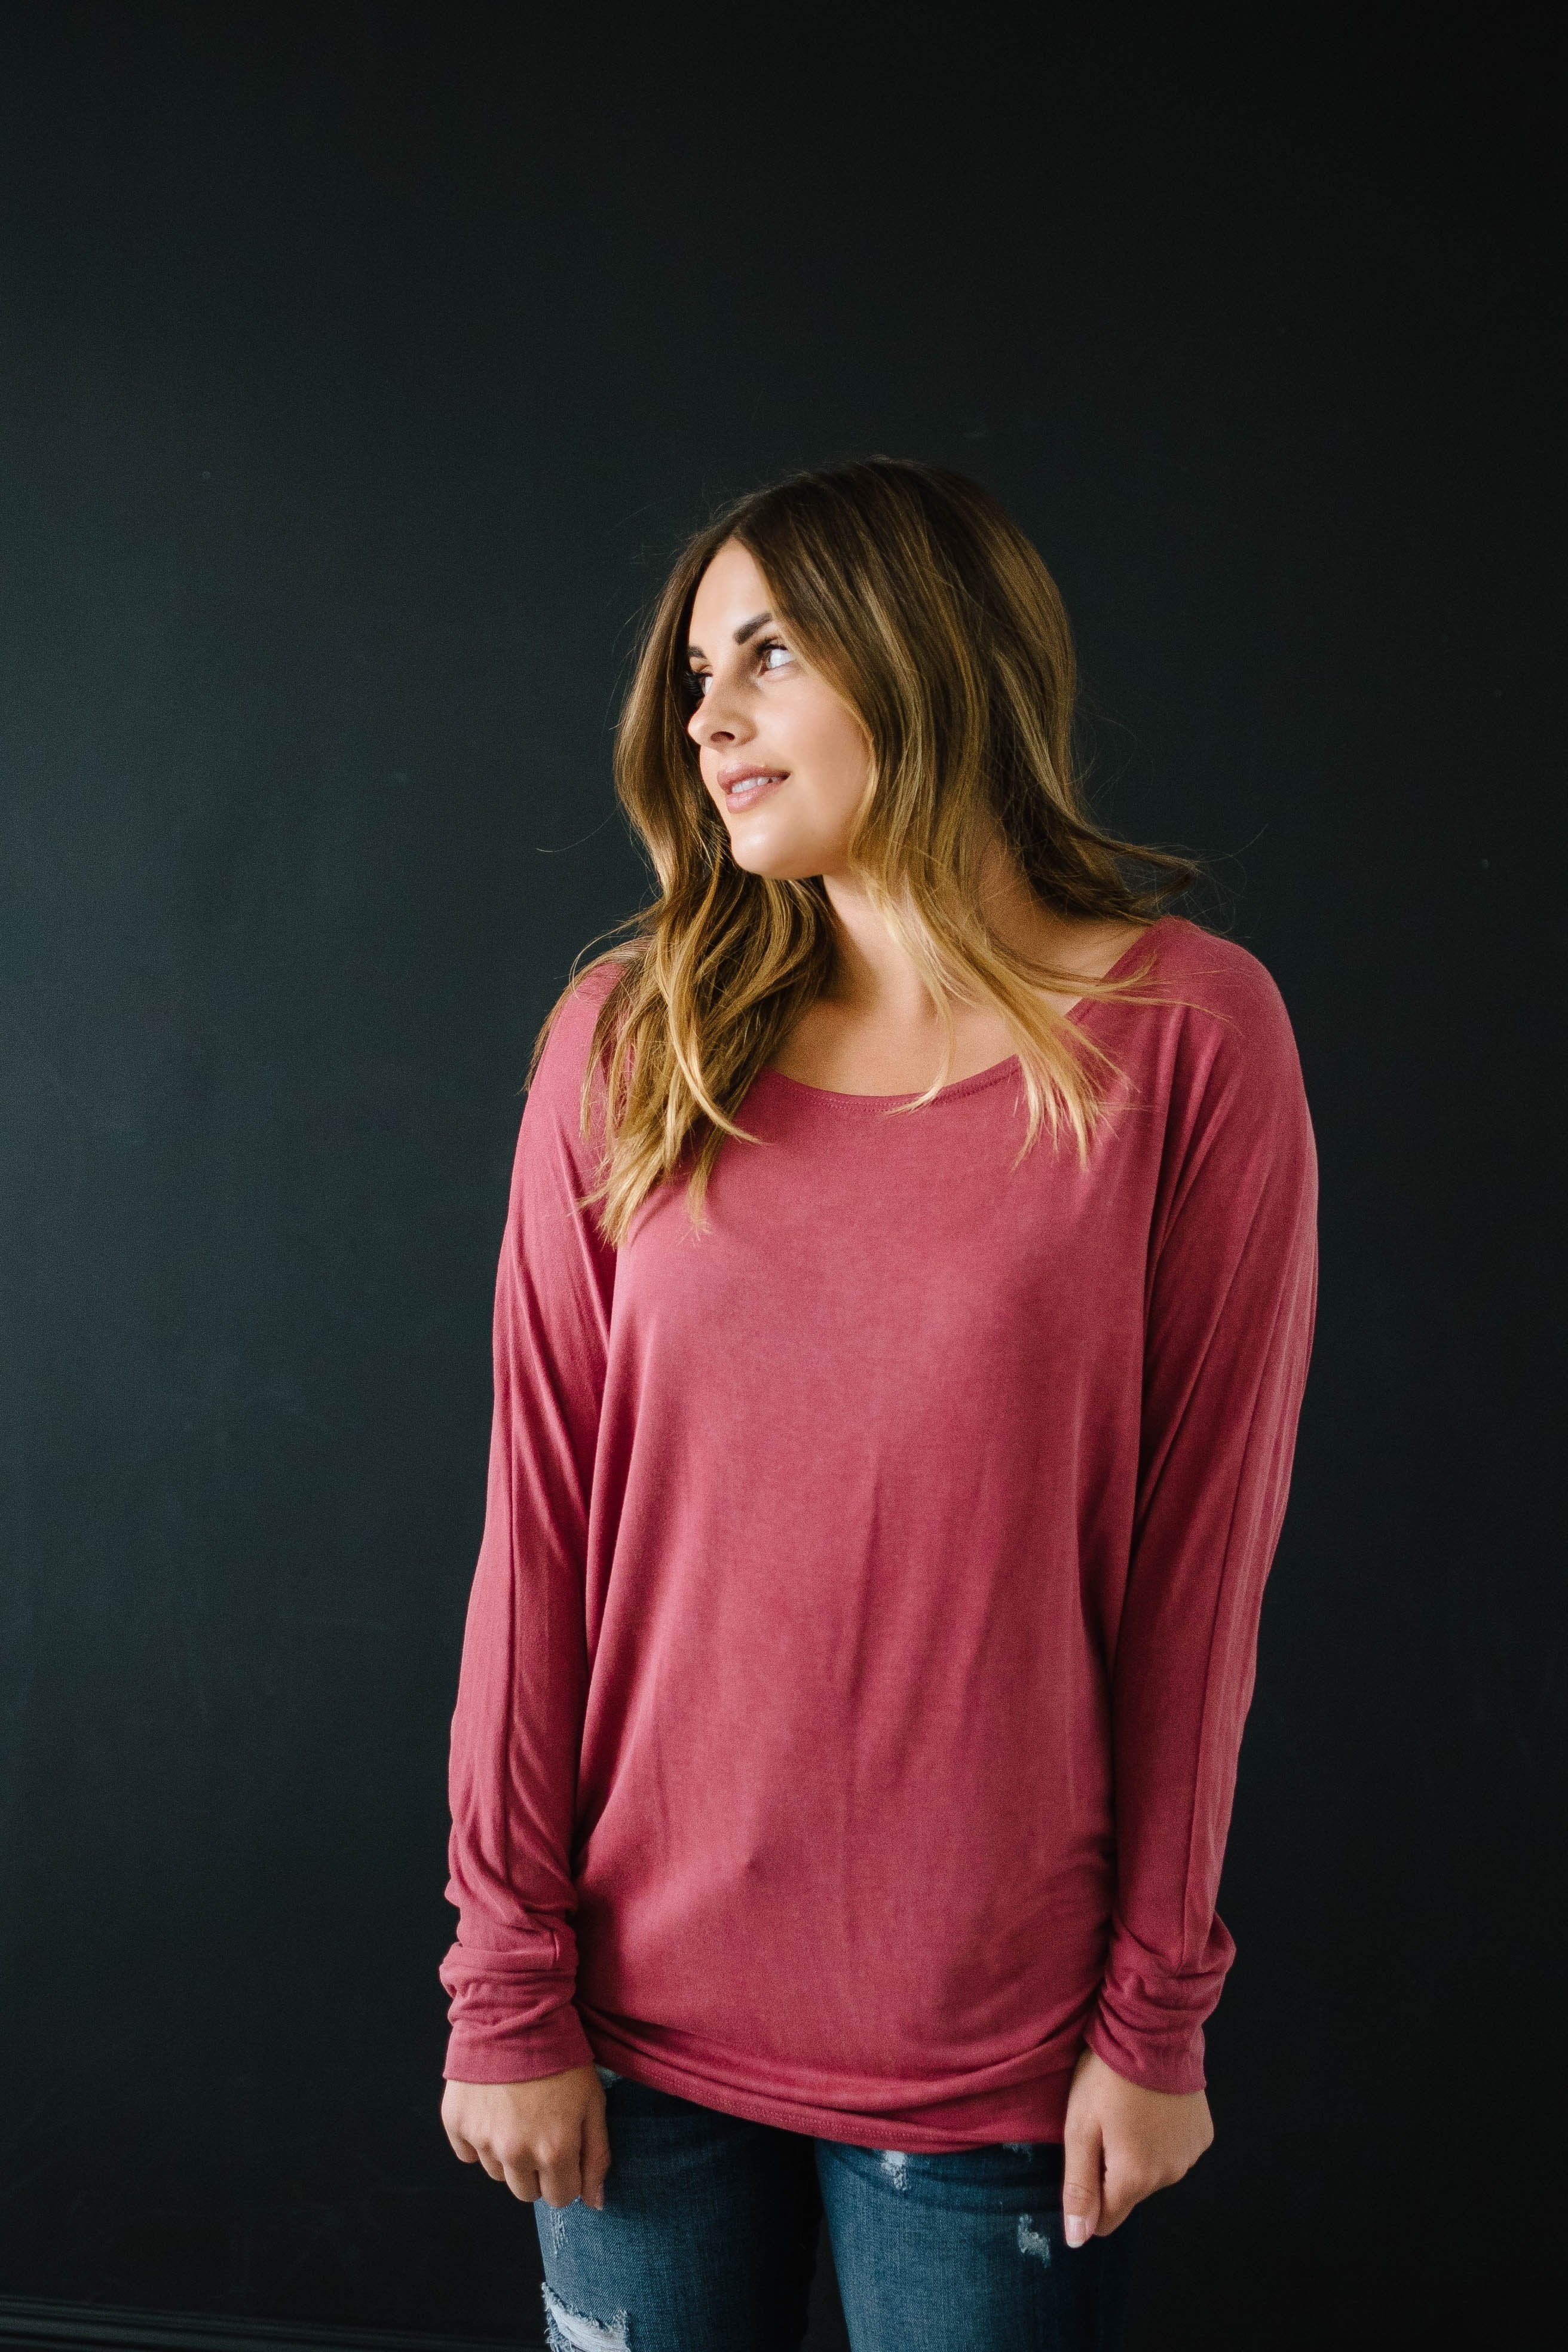 Casual Friday Top in Rose